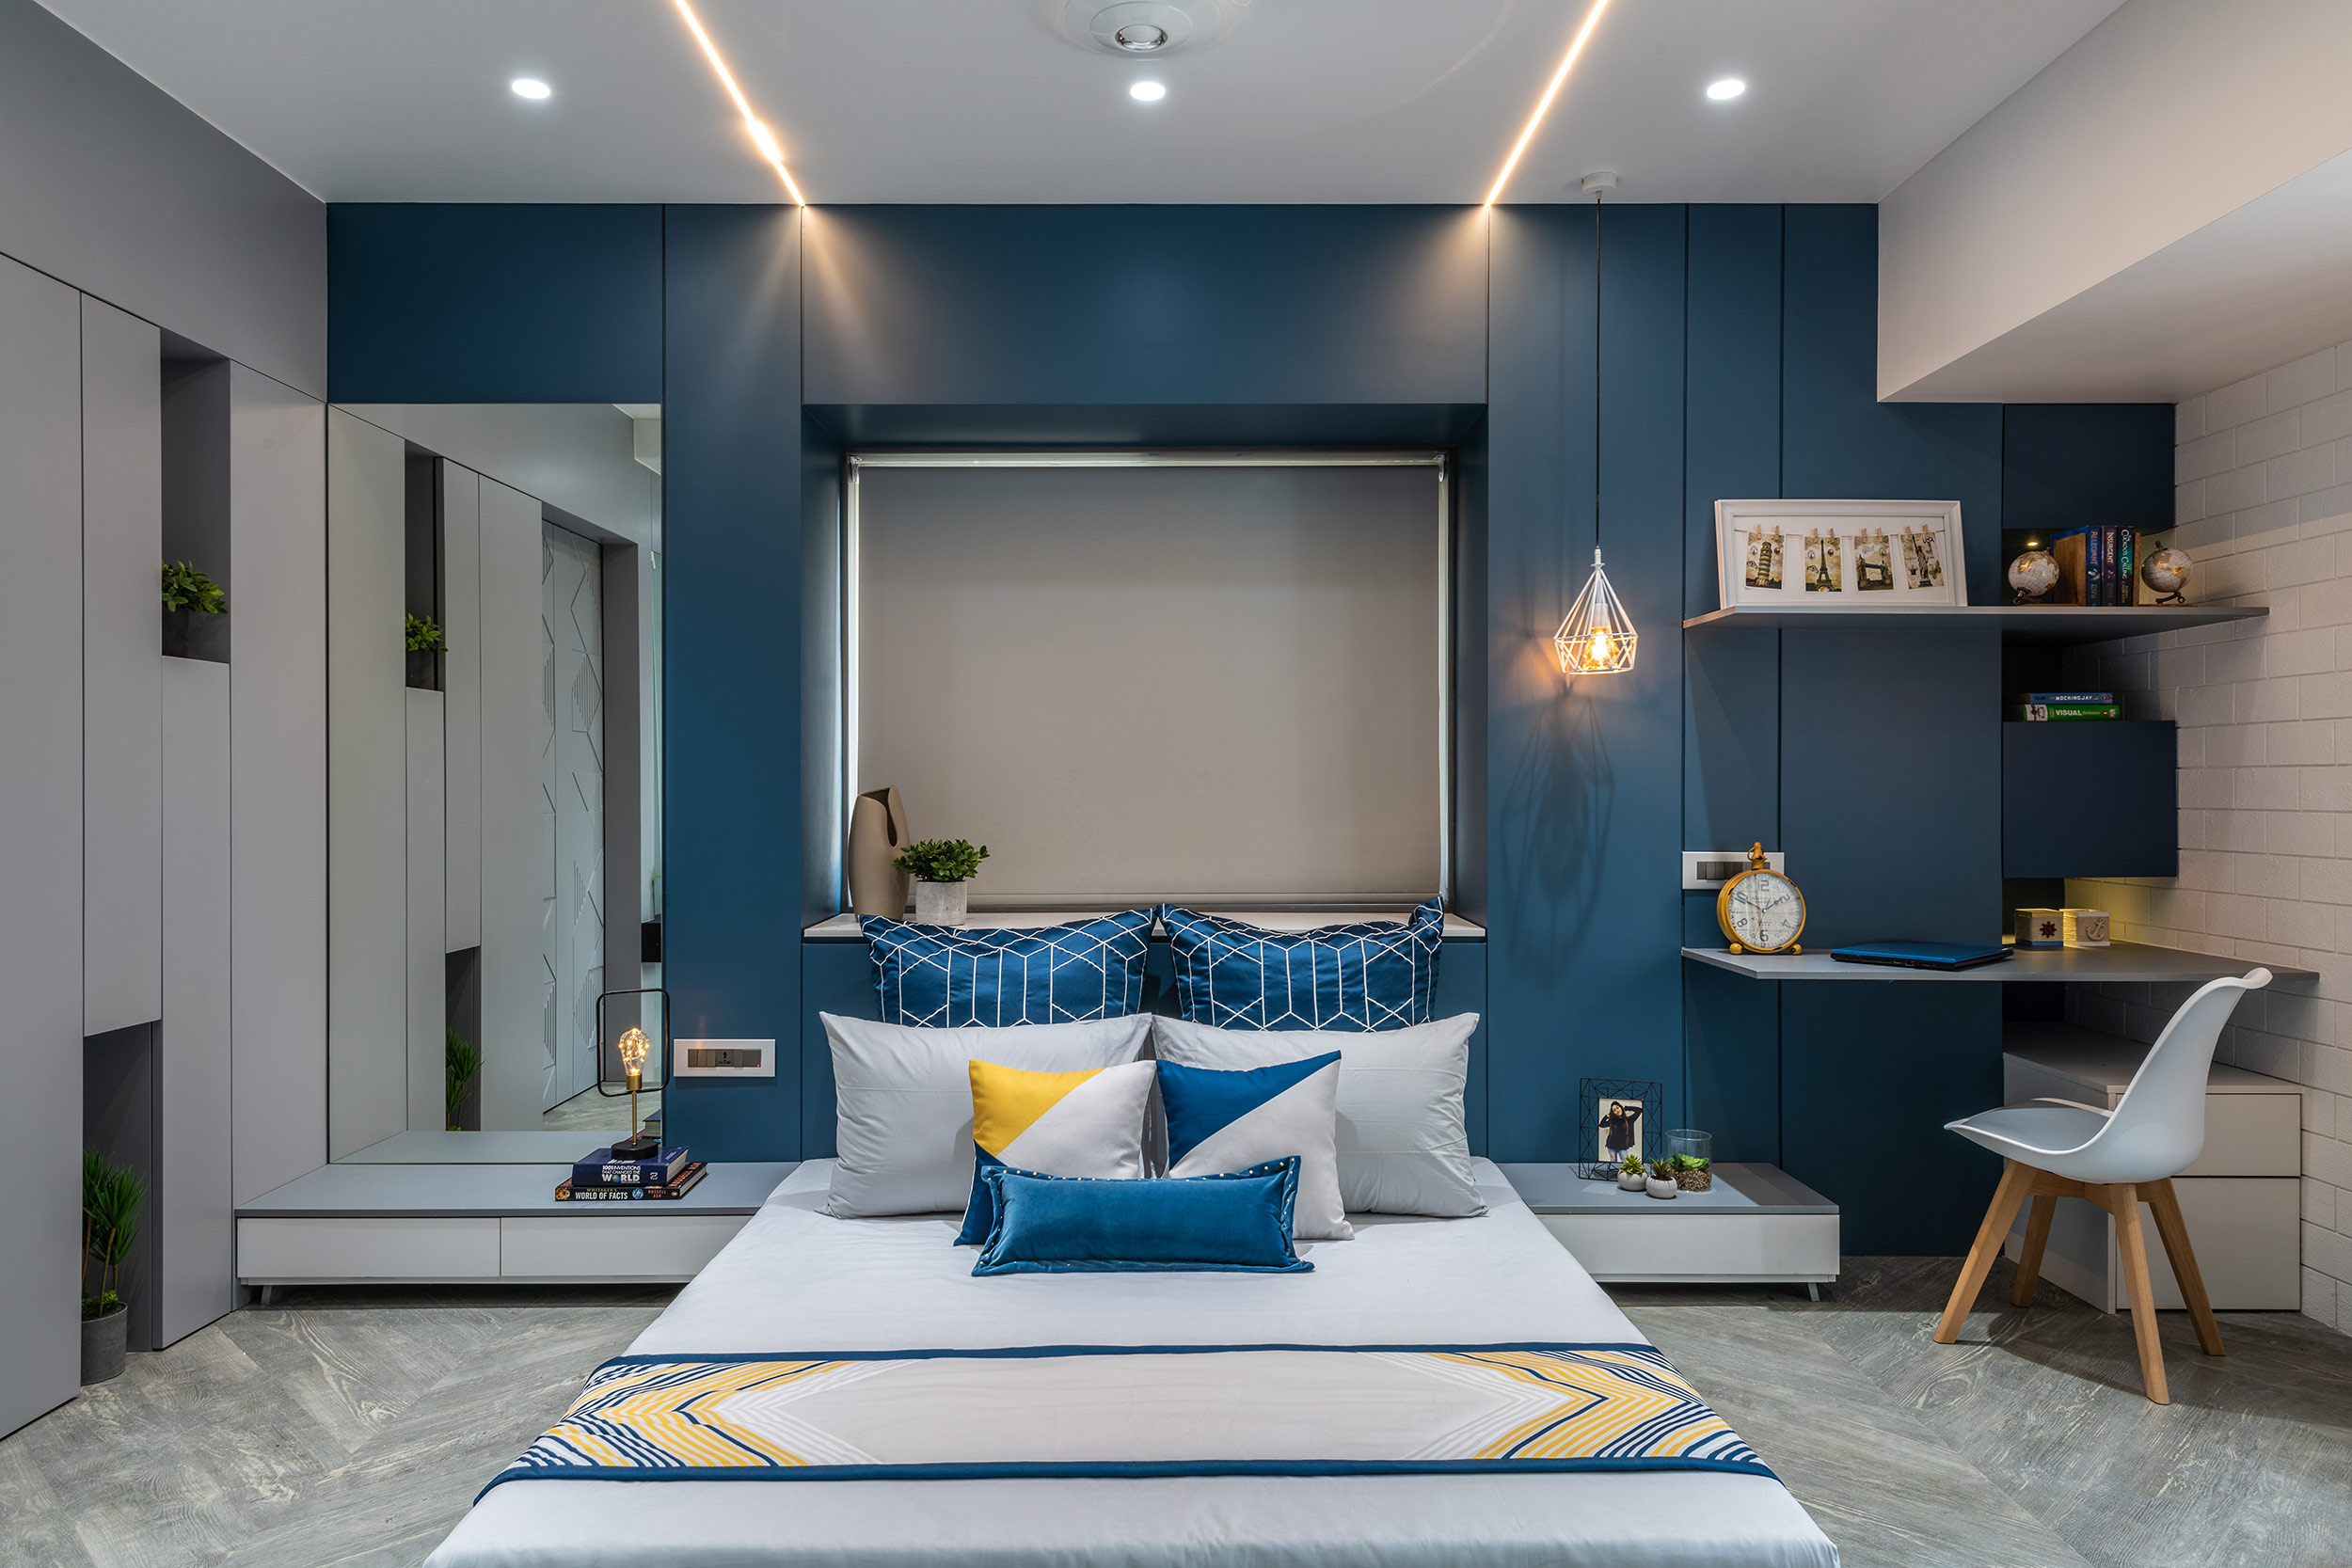 7 Comfortable Bedroom Design And Furniture Ideas For A Good Night S Sleep